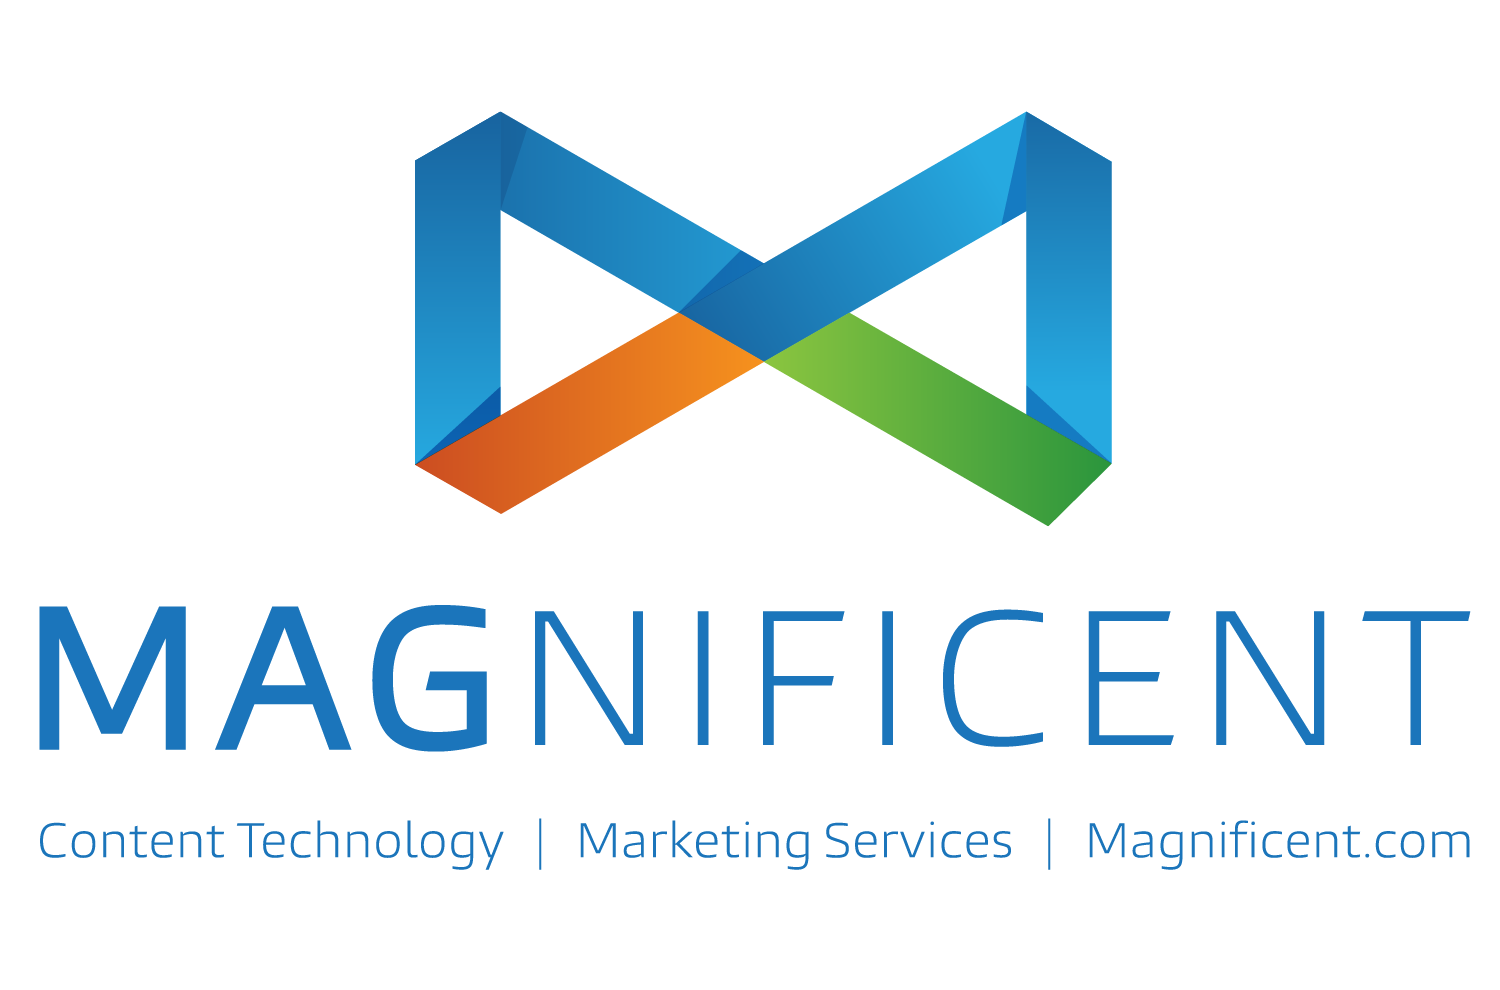 https://ratzpackmedia.com/wp-content/uploads/2018/03/Magnificent-Logo-03.png